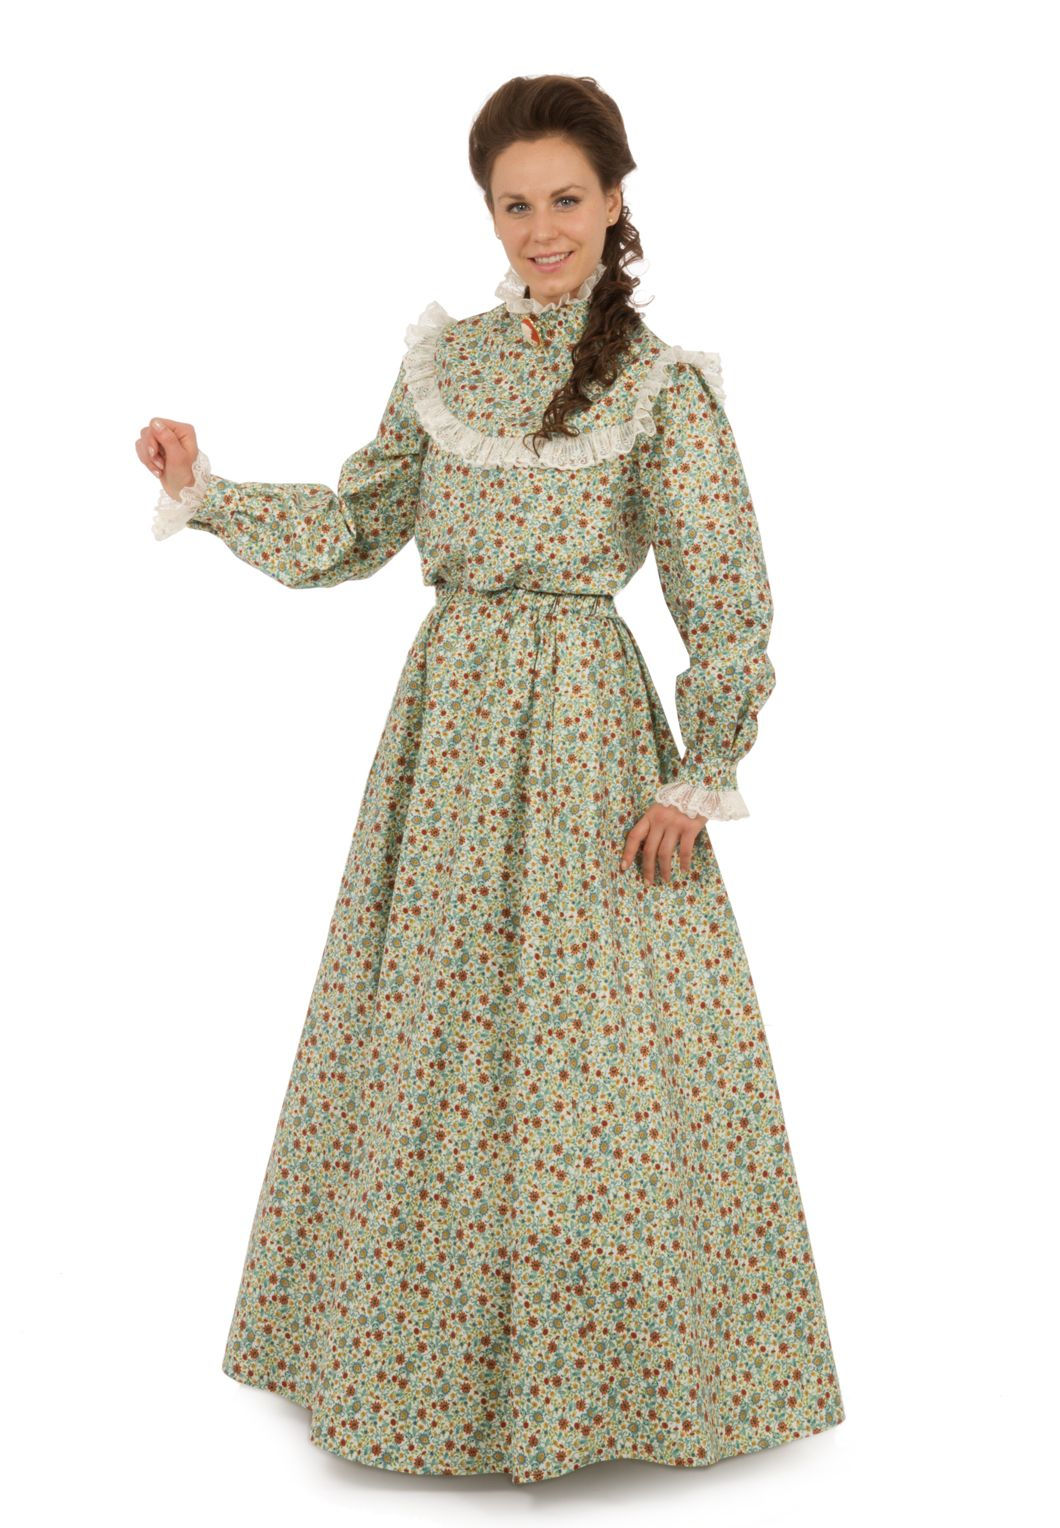 Green Gables Blouse And Skirt Pioneer Dress Pioneer Woman Dress 1800s Dresses [ 1528 x 1060 Pixel ]